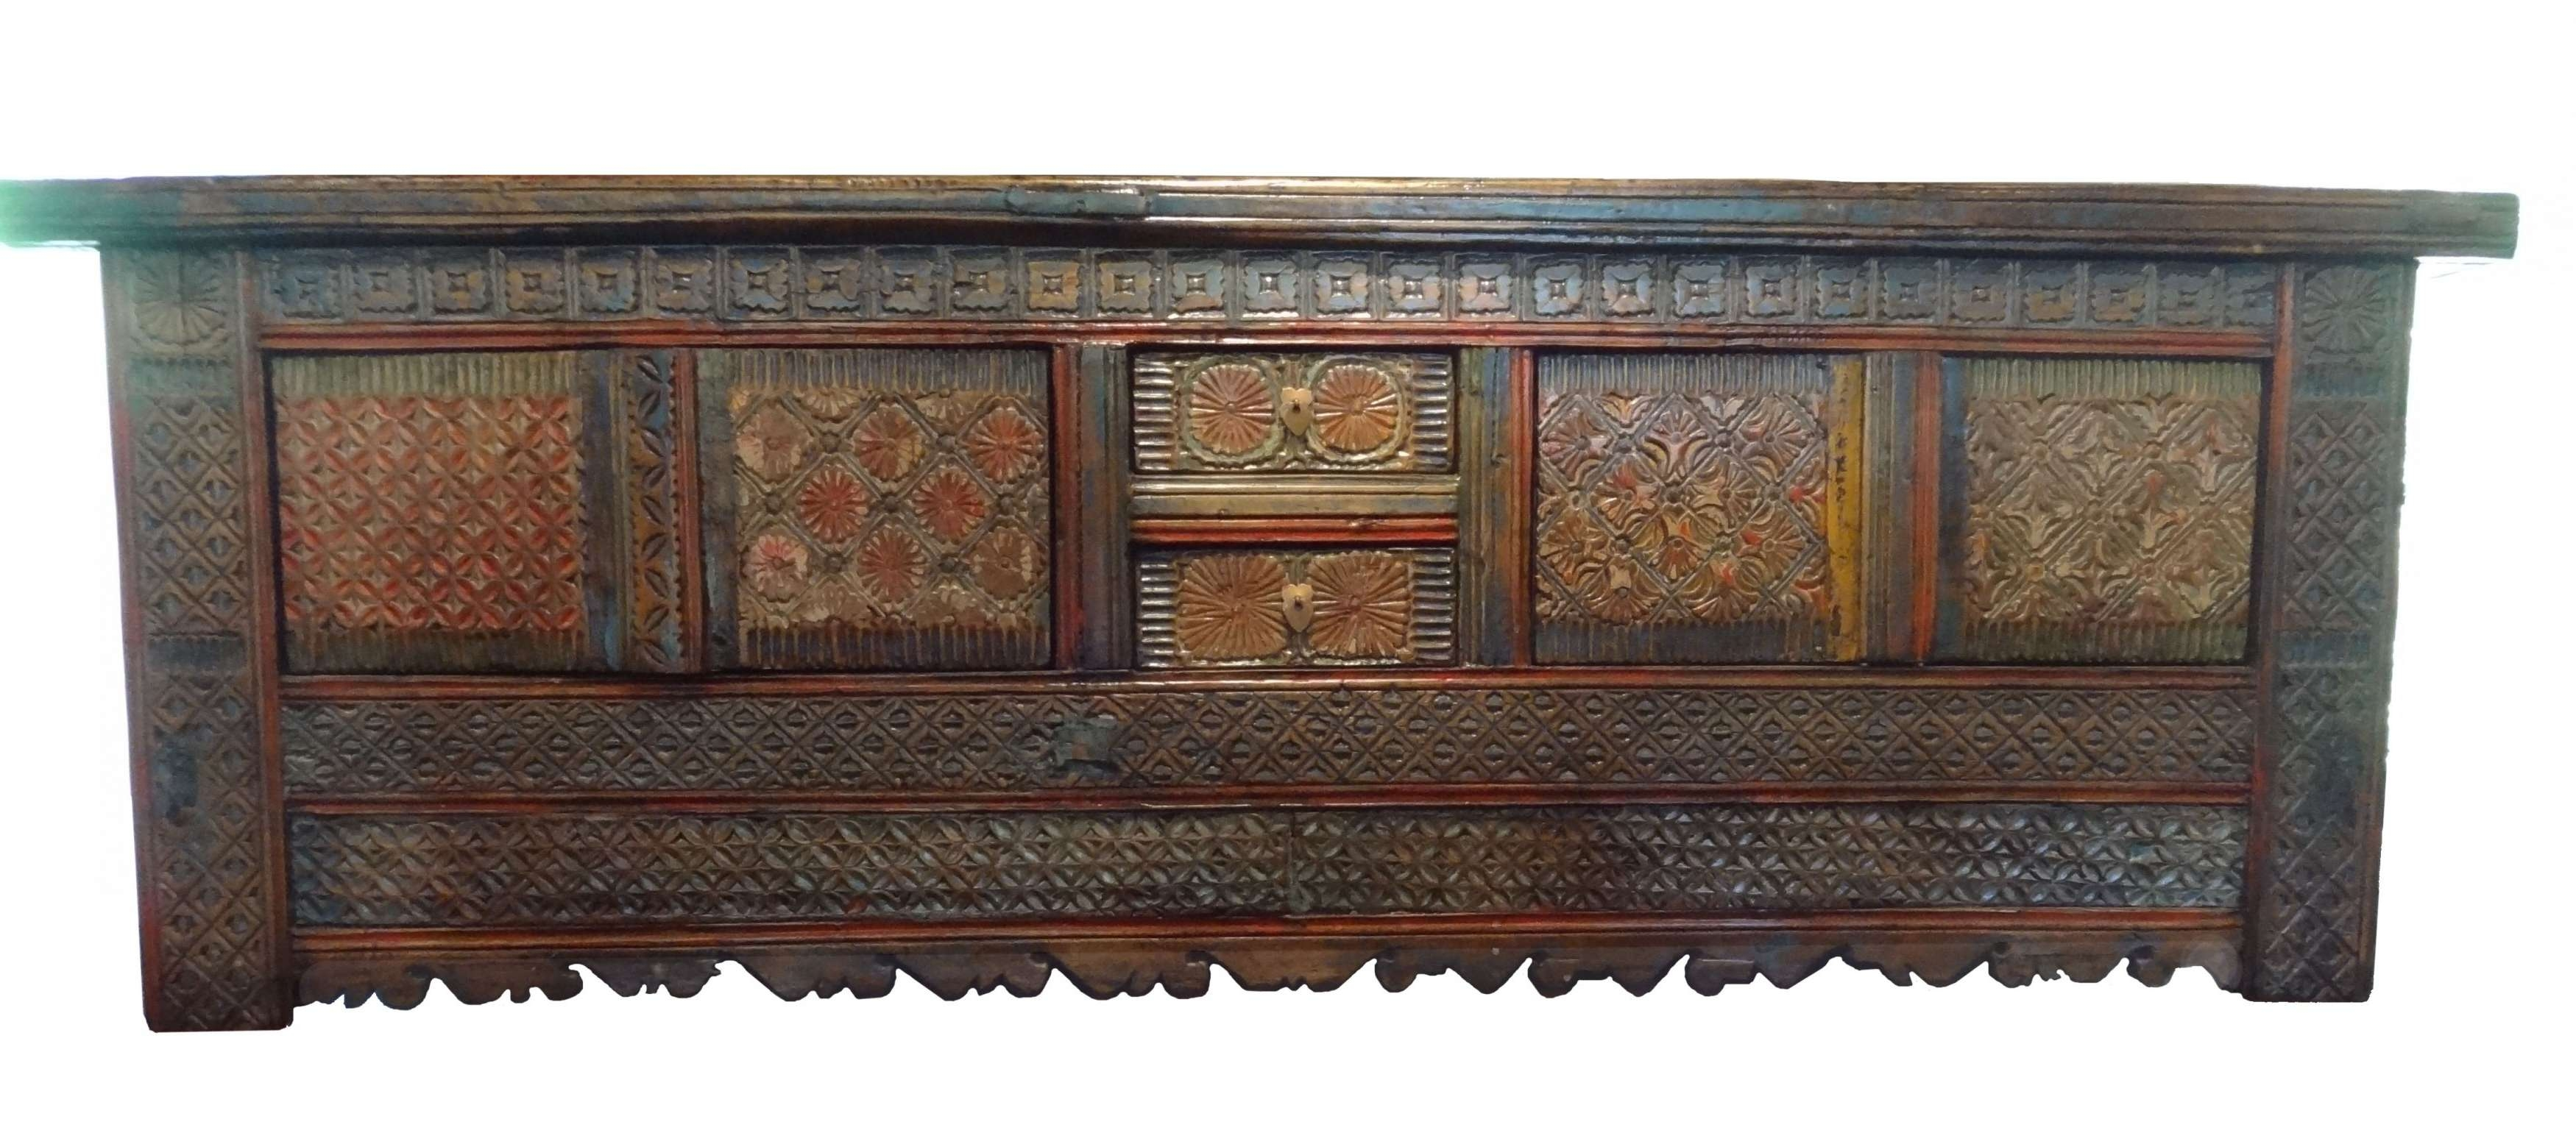 Antique Sideboards | Gallery Categories | Aptos Cruz Inside Antique Sideboards (View 6 of 20)